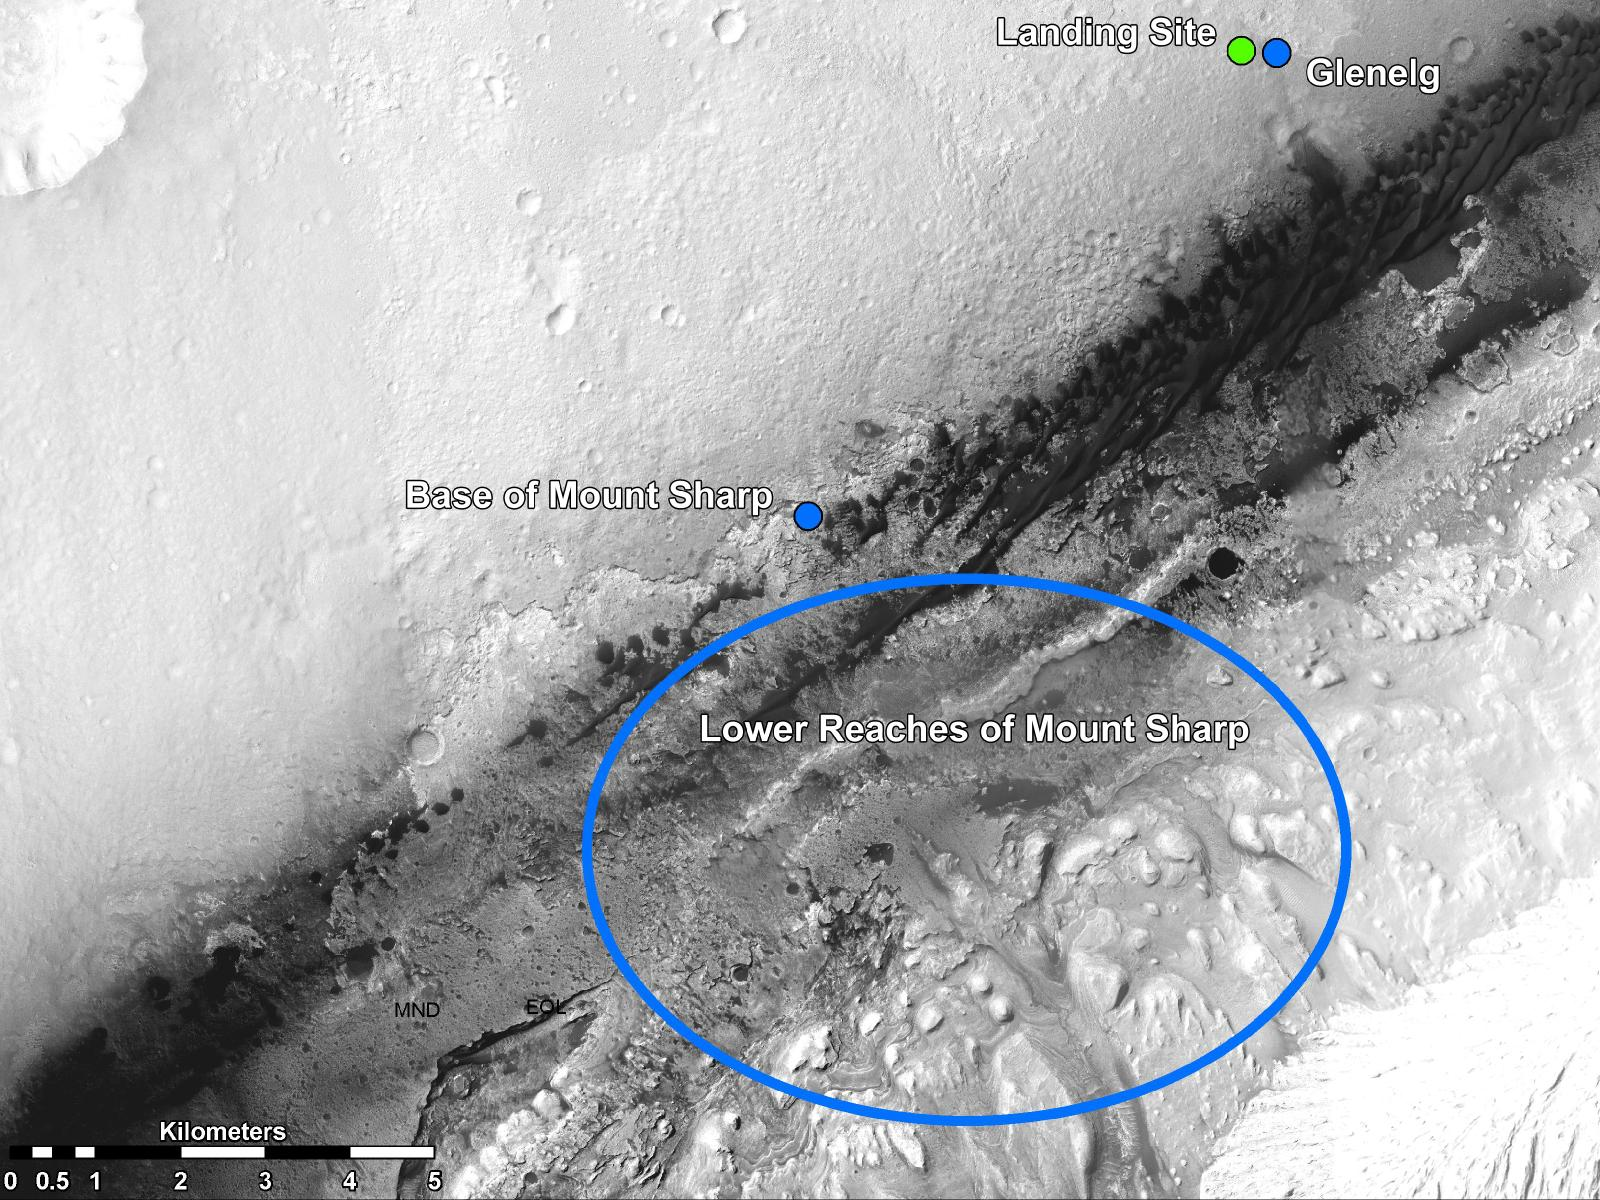 Martian Treasure Map: Curiosity's Glenelg